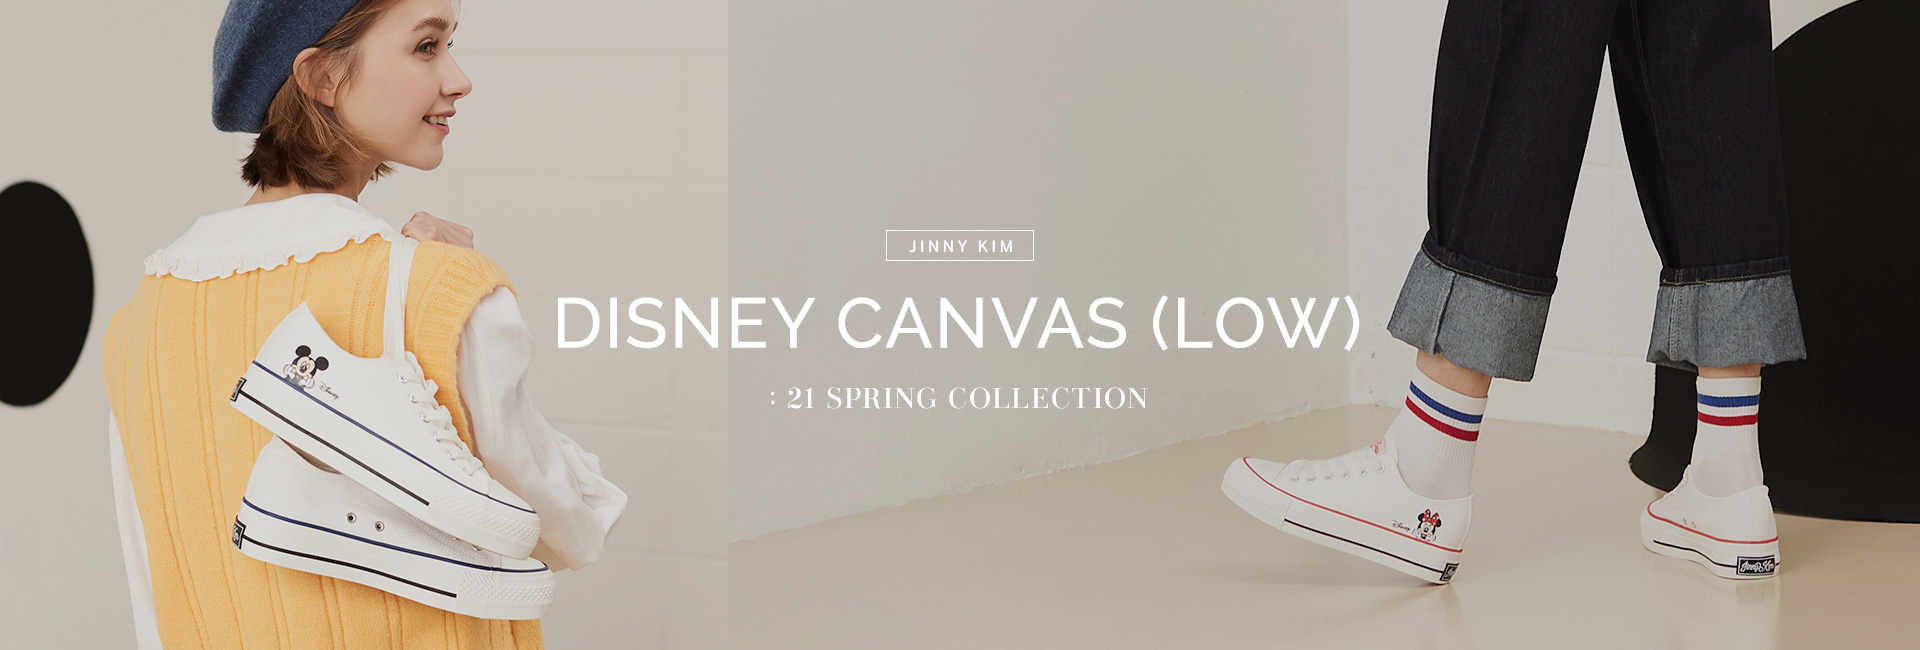 Disney Canvas (low)